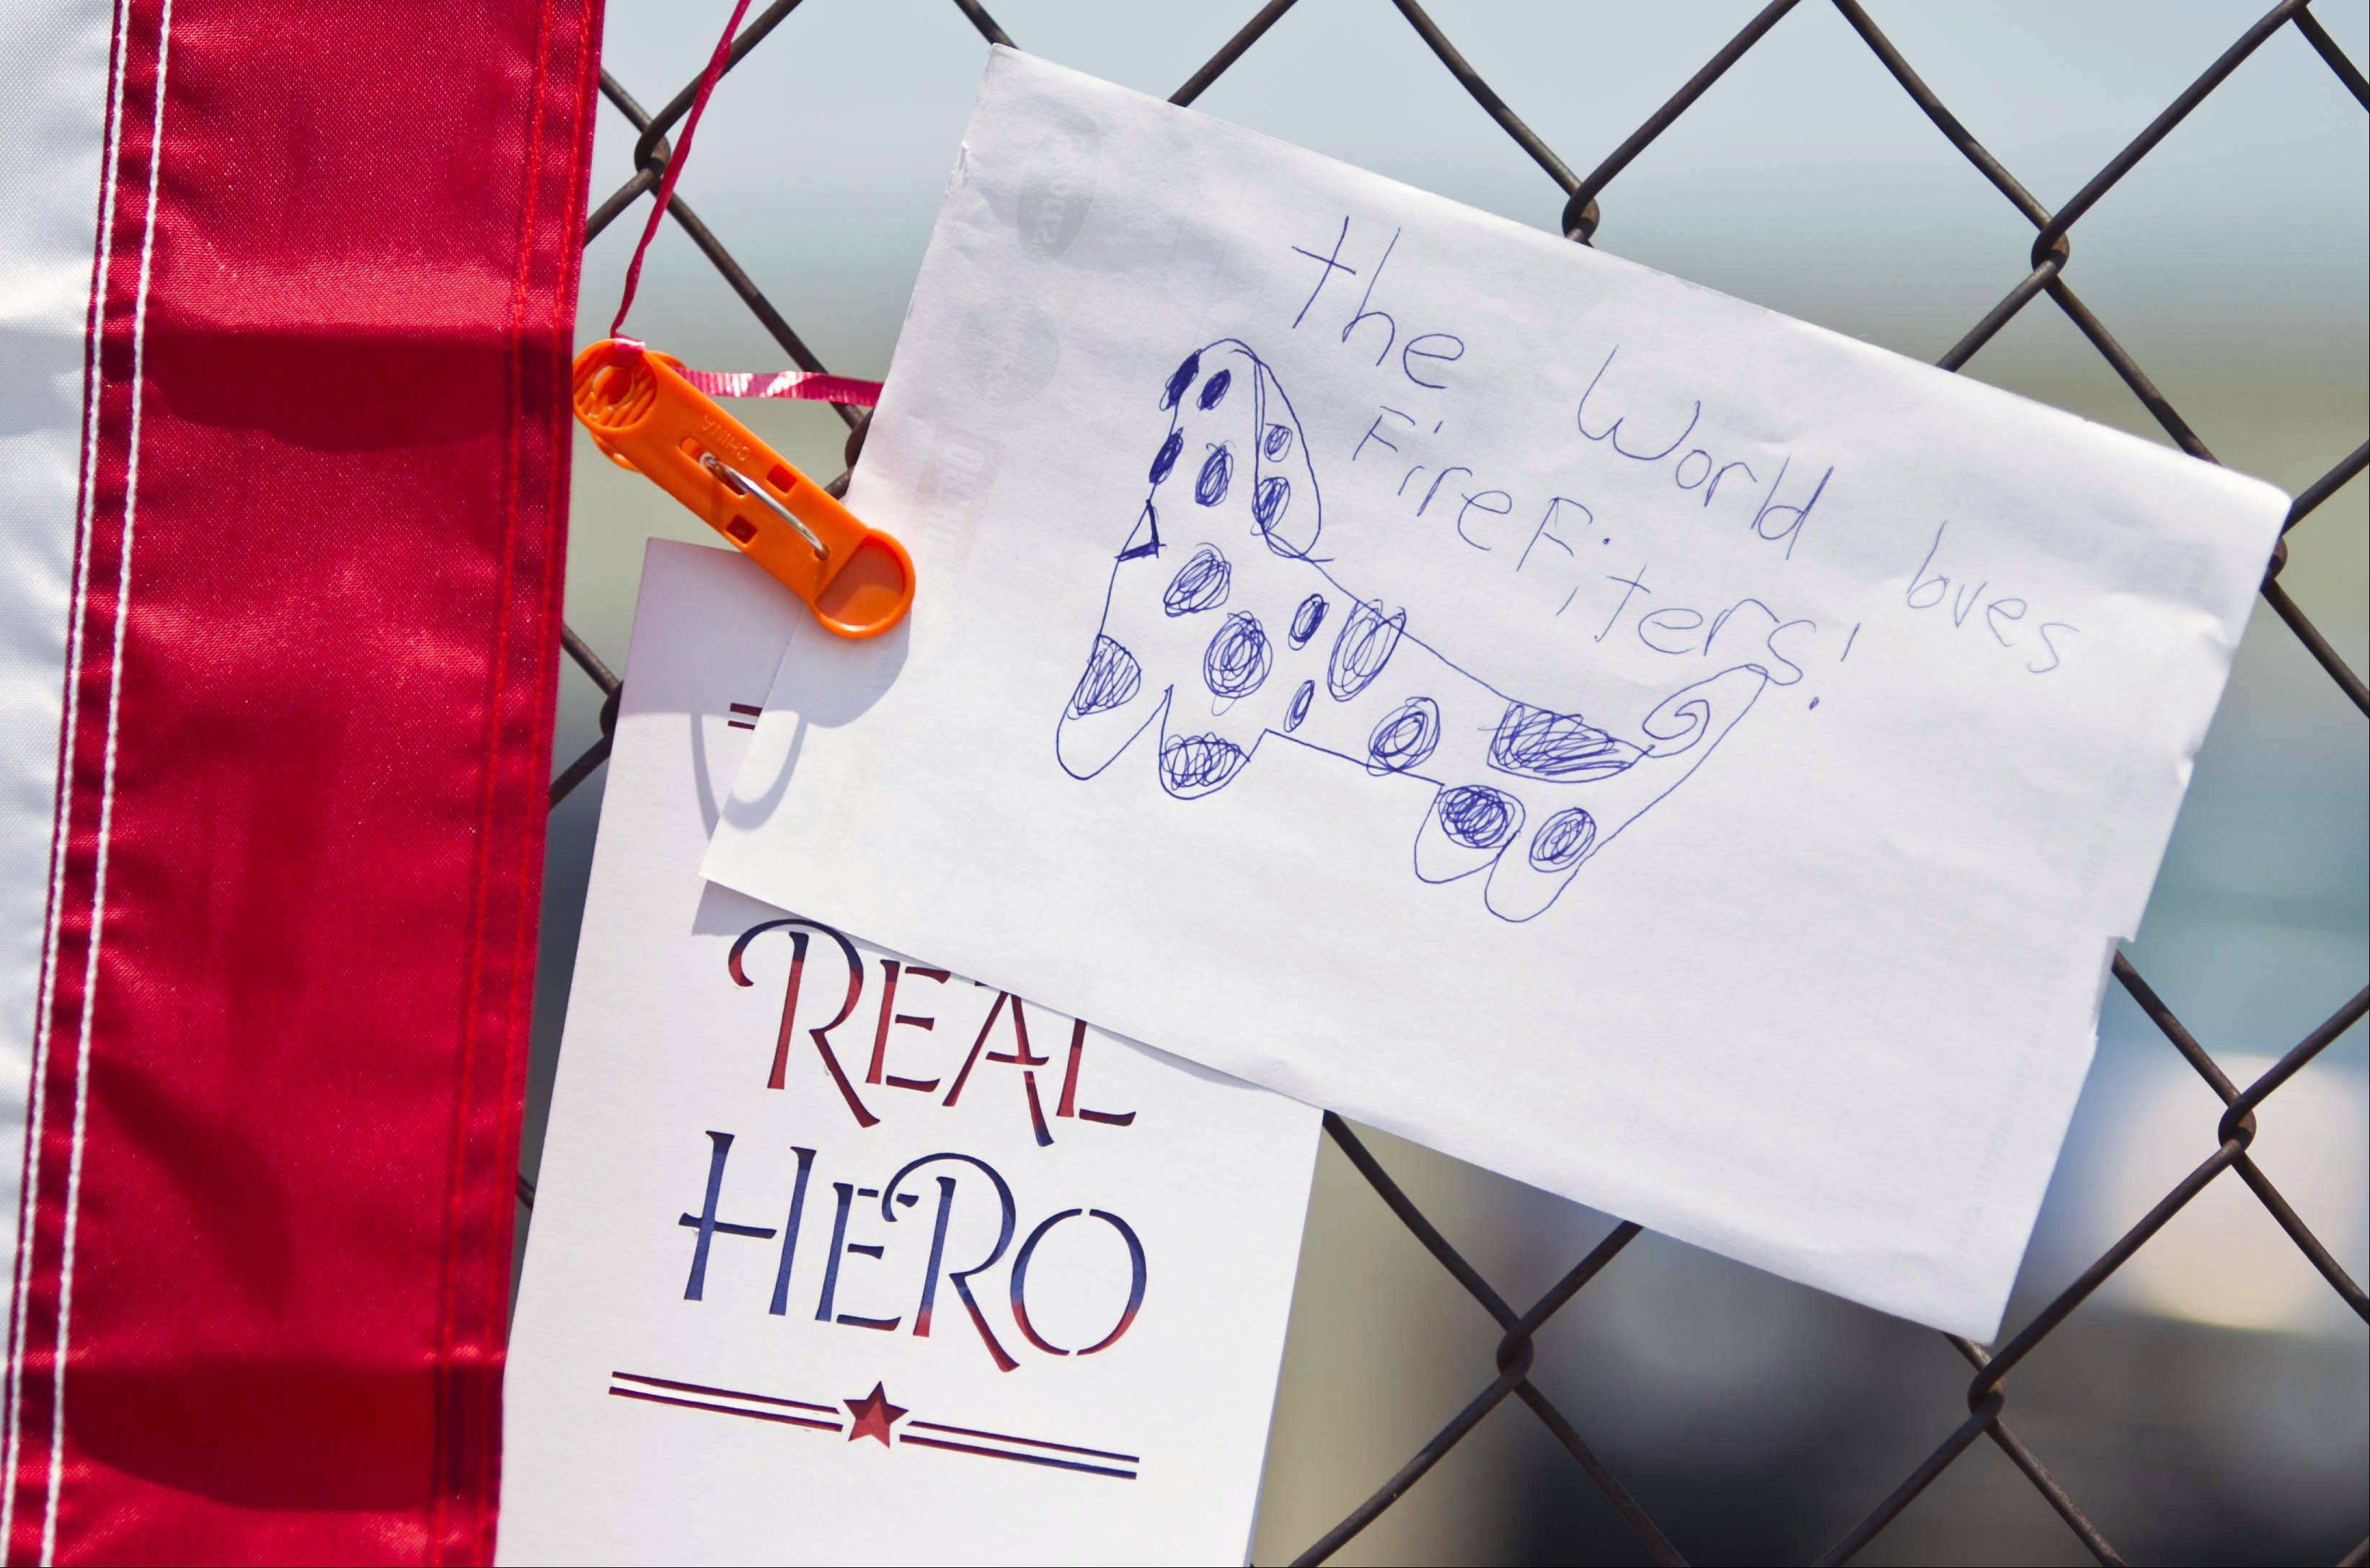 Signs are displayed at a makeshift memorial at the fire station Monday, July 1, 2013, in Prescott, Ariz.